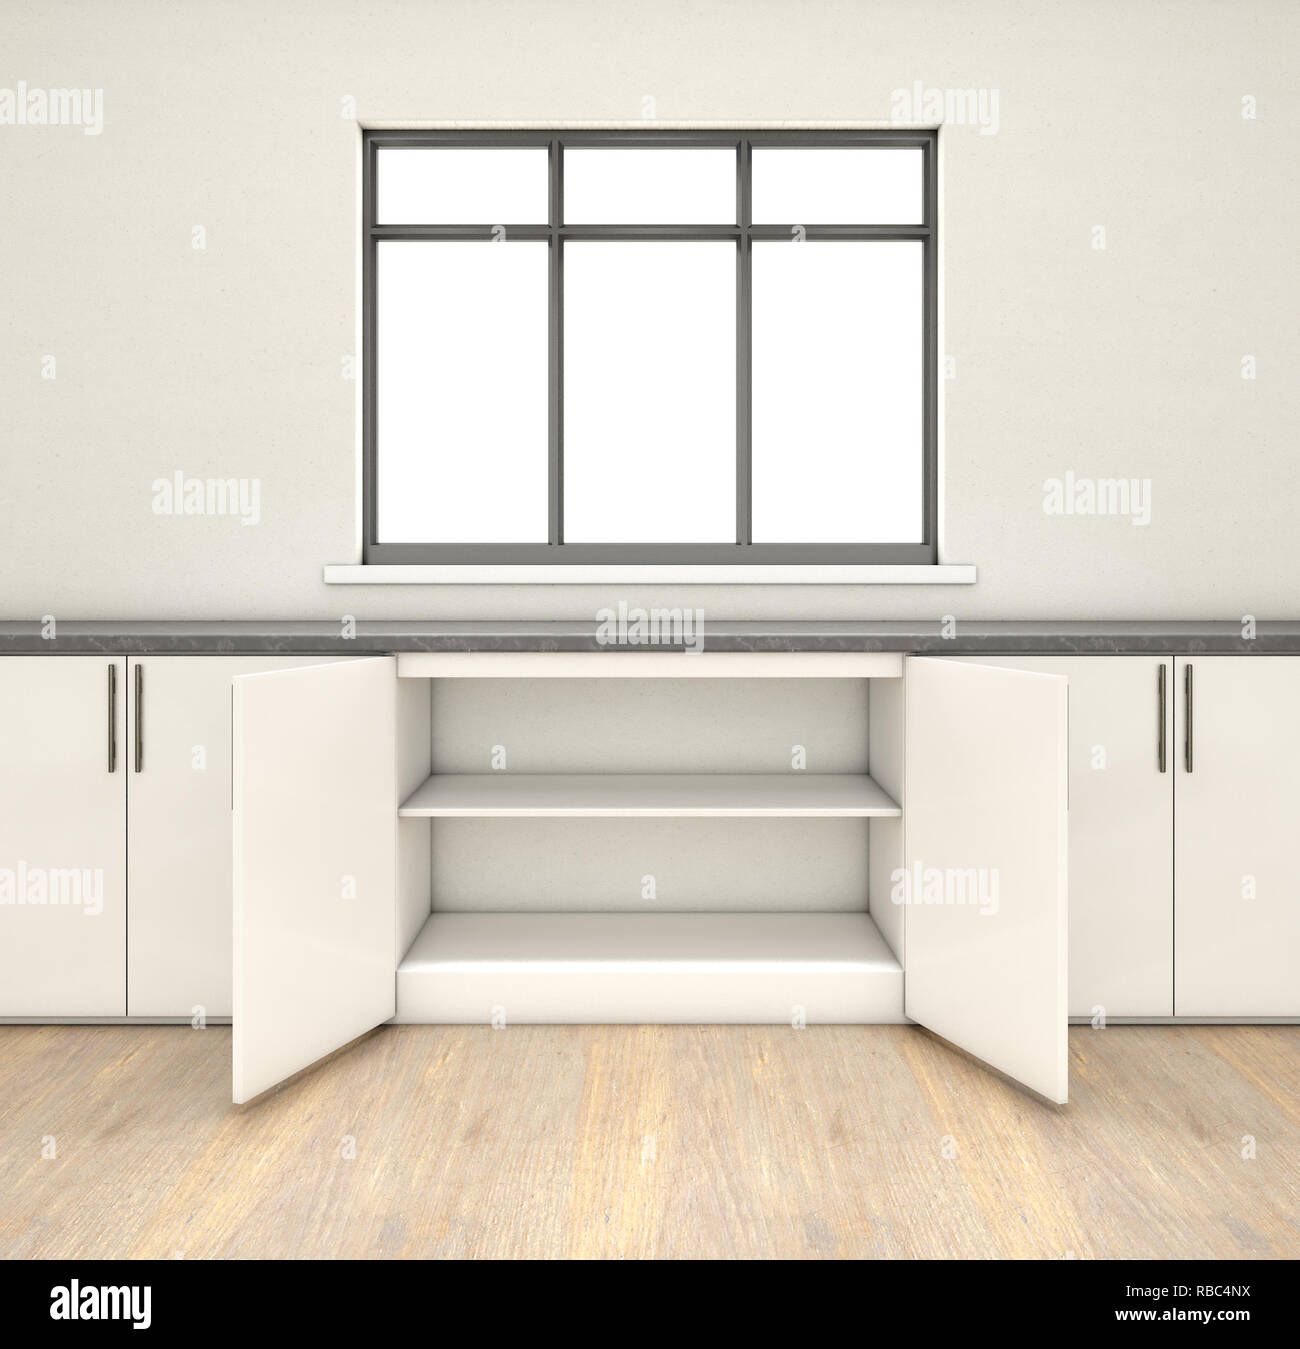 Empty Kitchen Cupboard: Open Kitchen Cabinet Empty Stock Photos & Open Kitchen